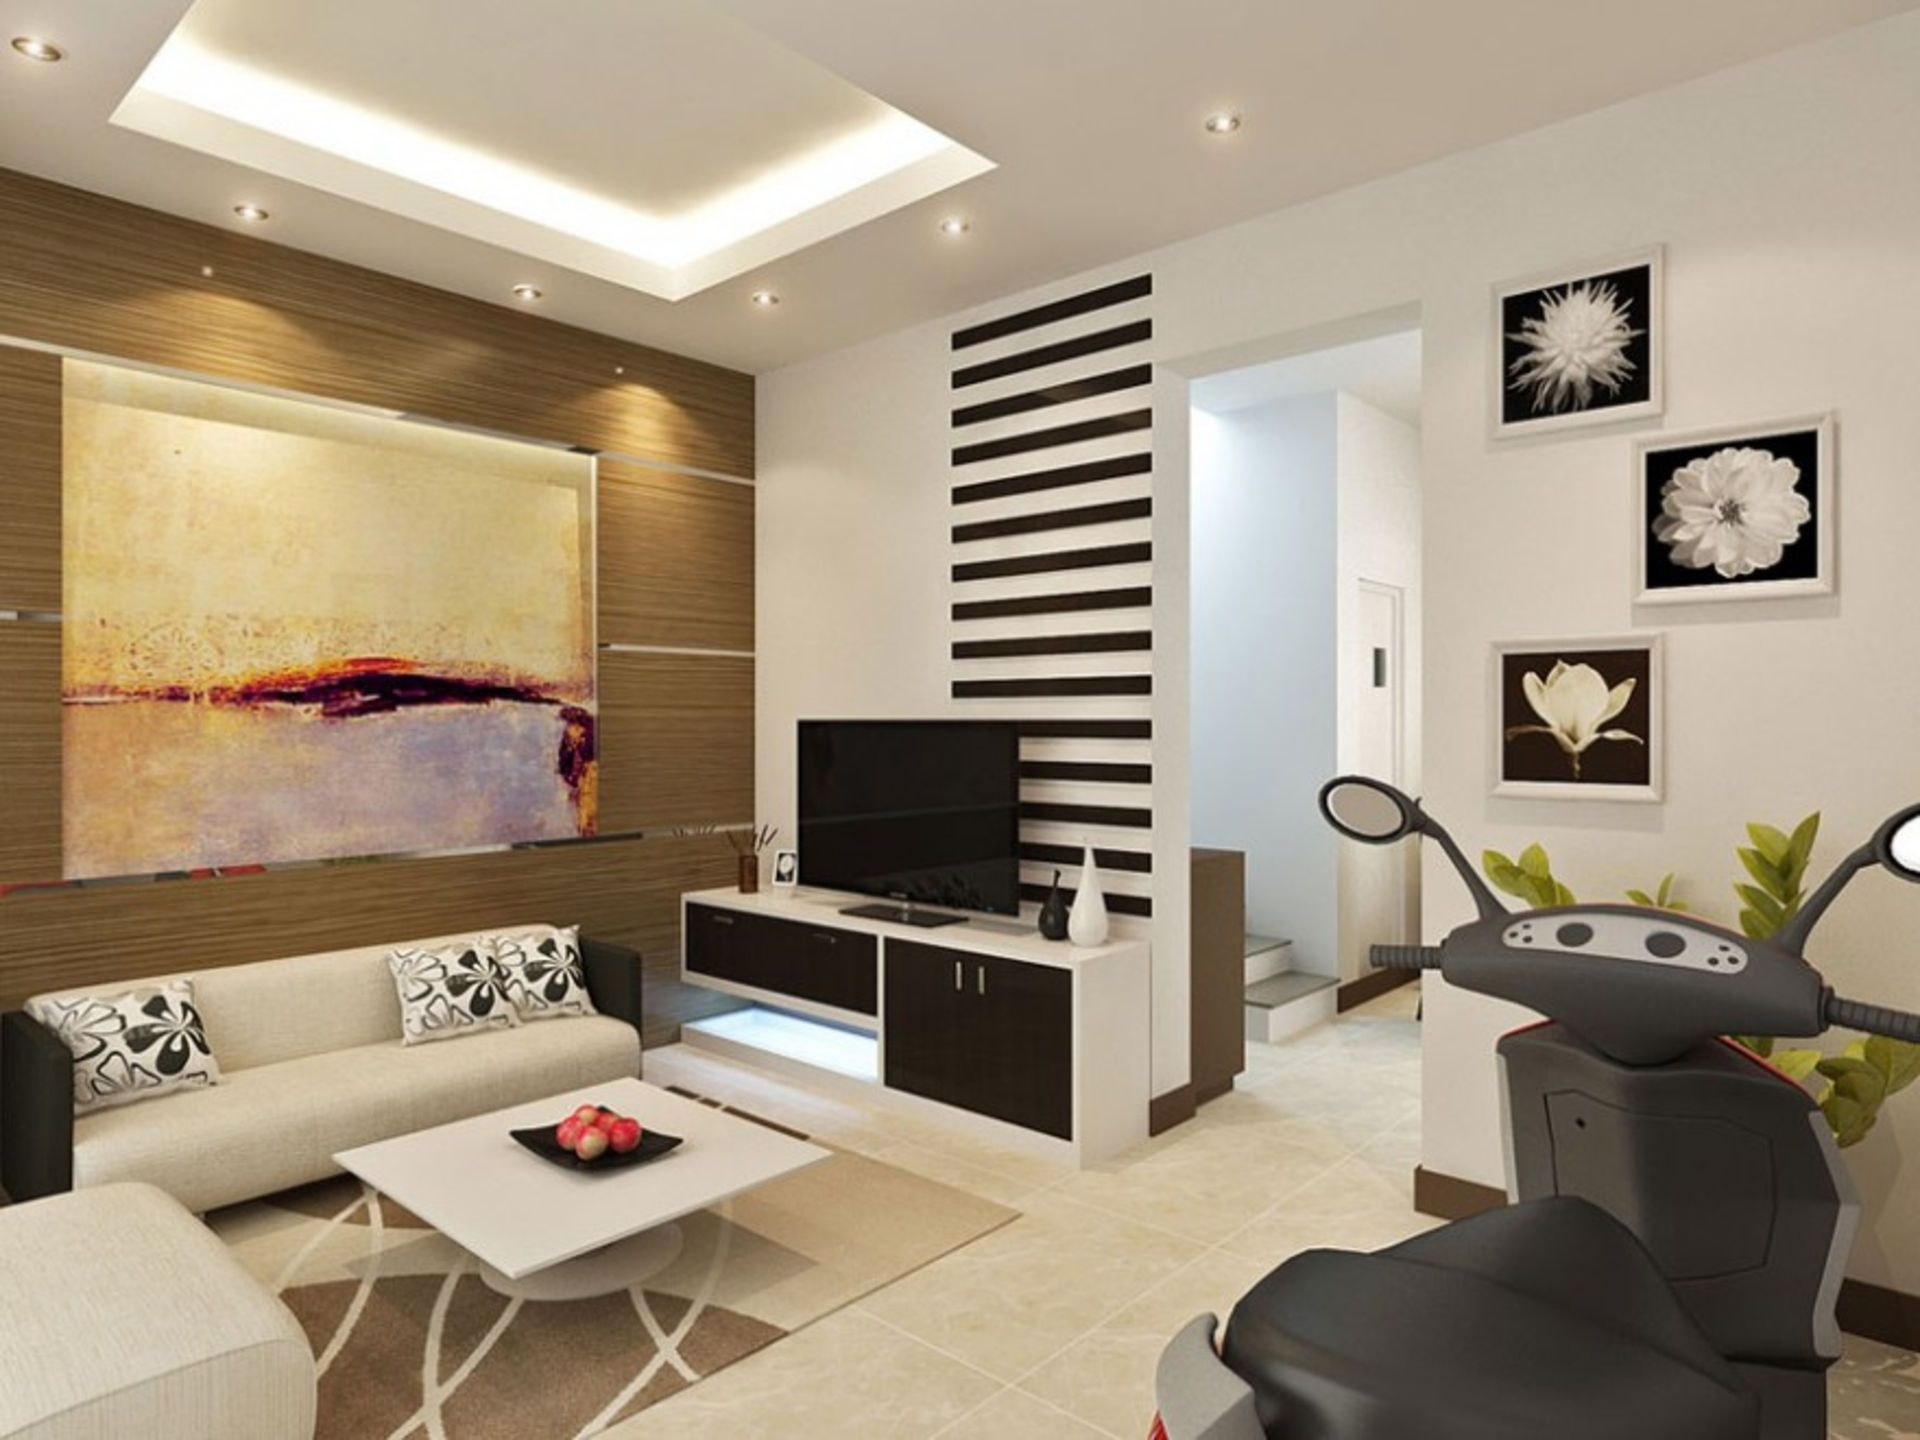 Interior Design Ideas For Small Living Room In India Small Space